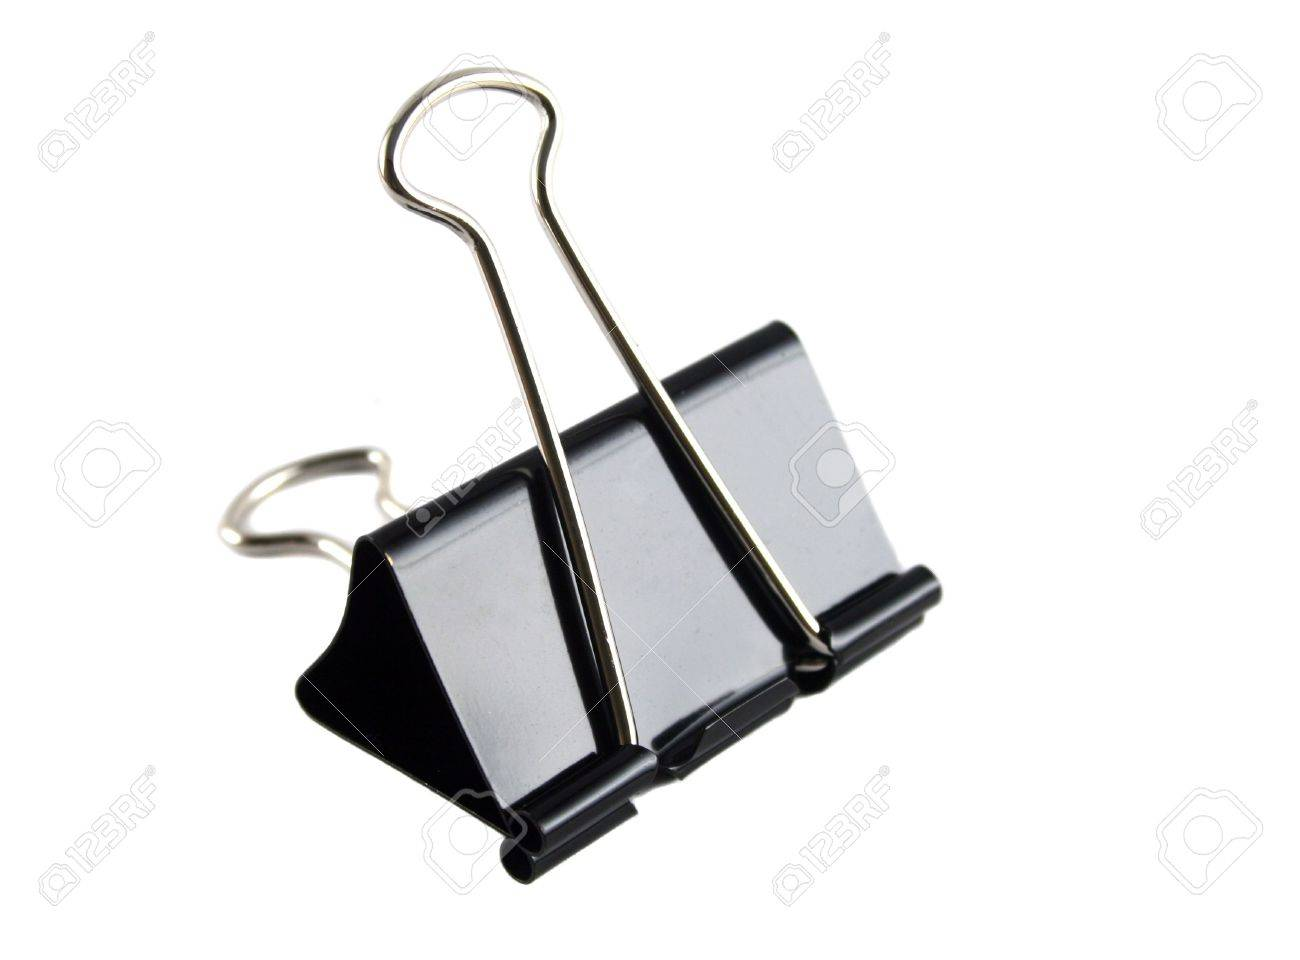 Steel foldback clip used for clipping sheets of paper together. Stock Photo - 2529615